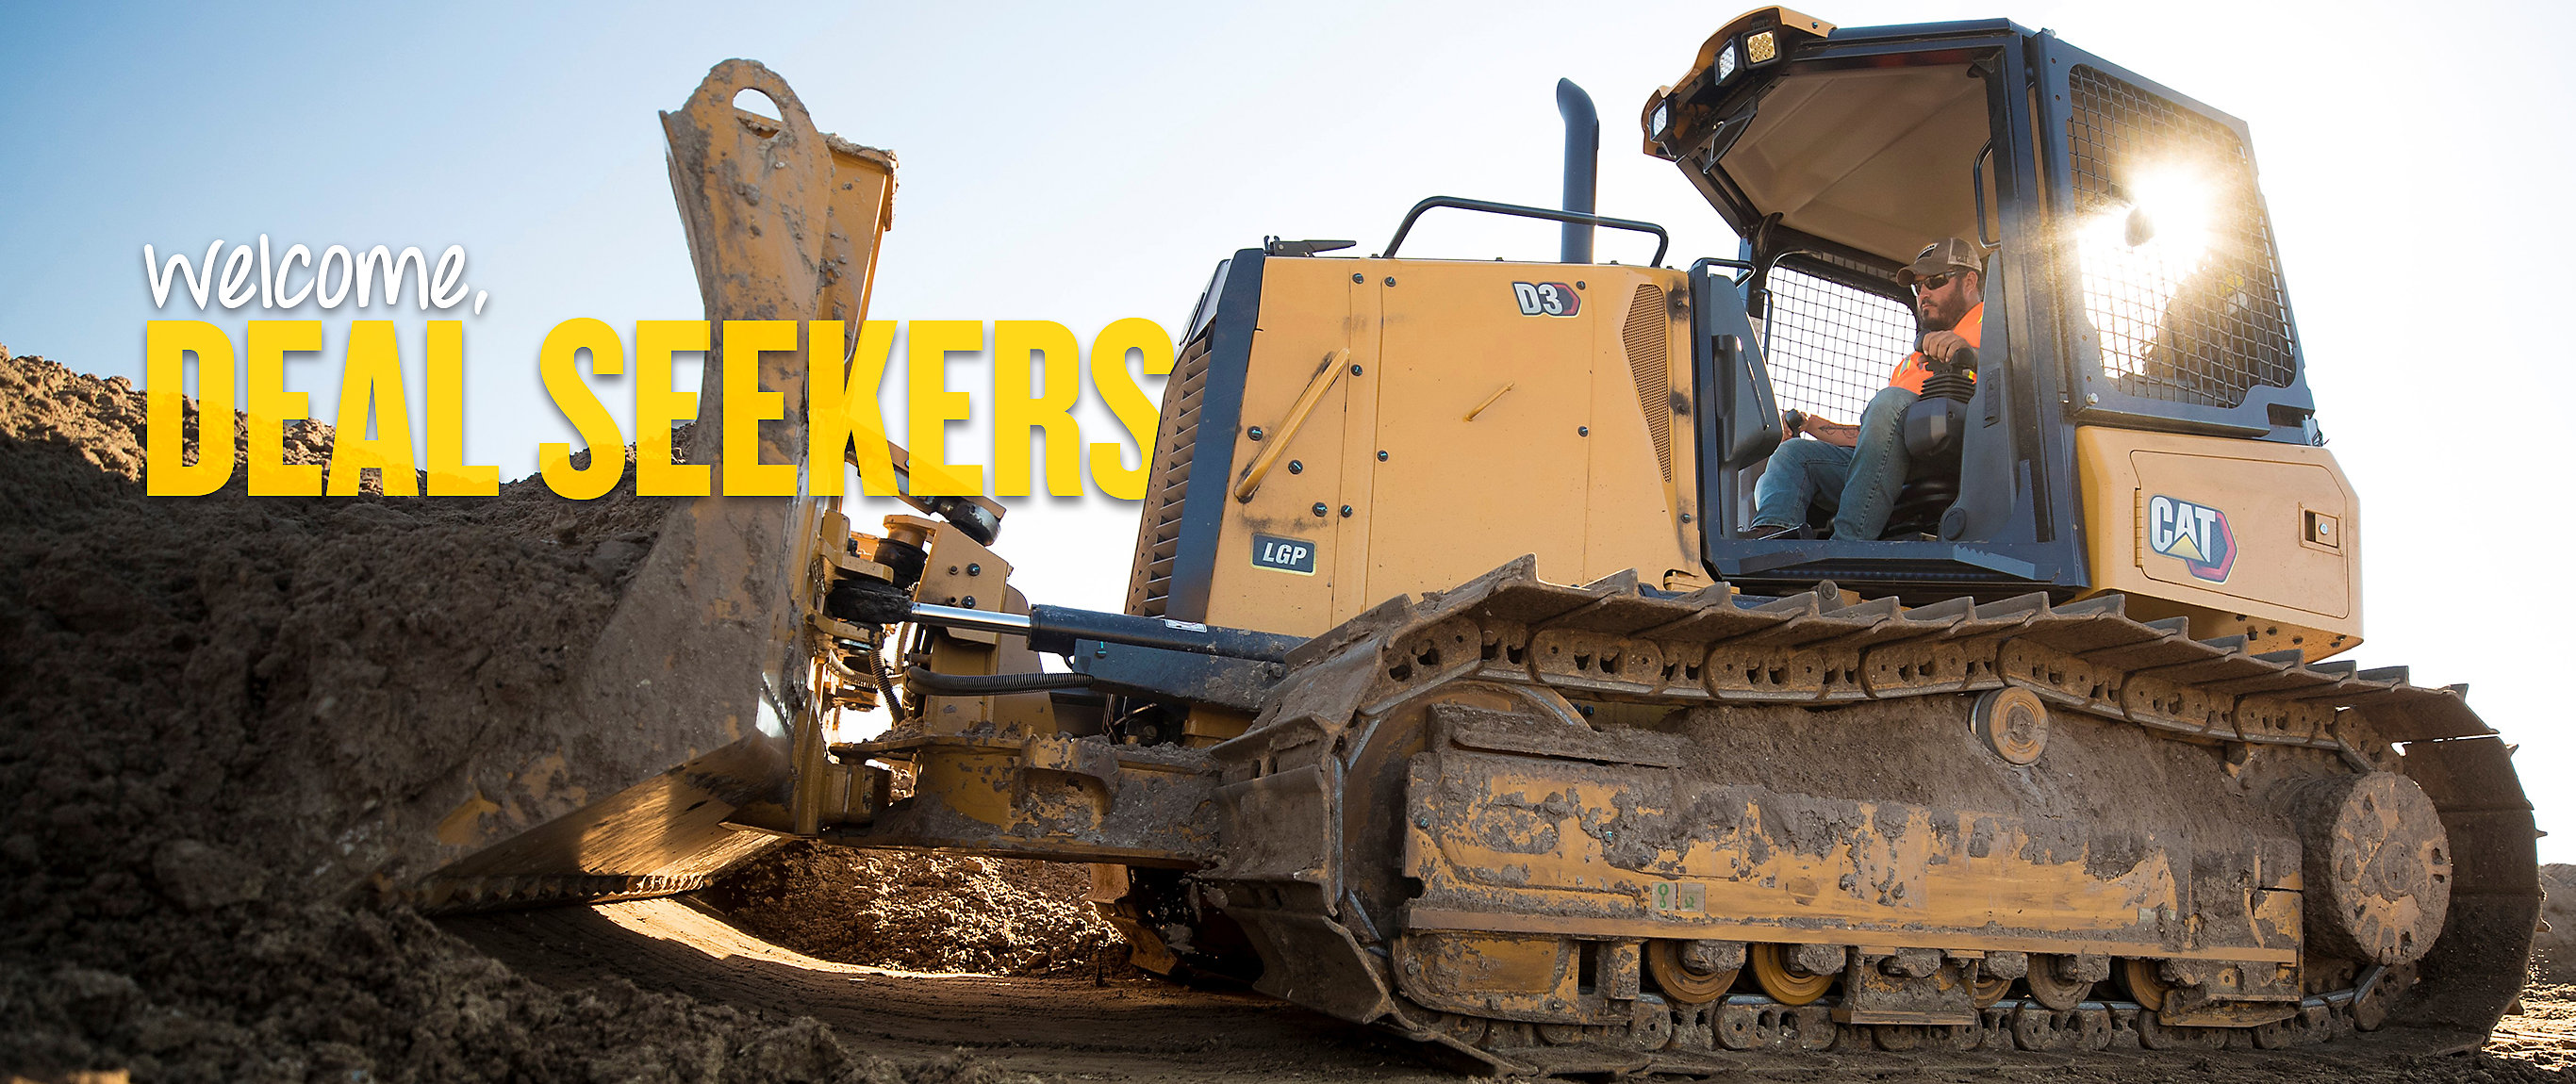 Cat Small Dozer - Welcome, Deal Seekers